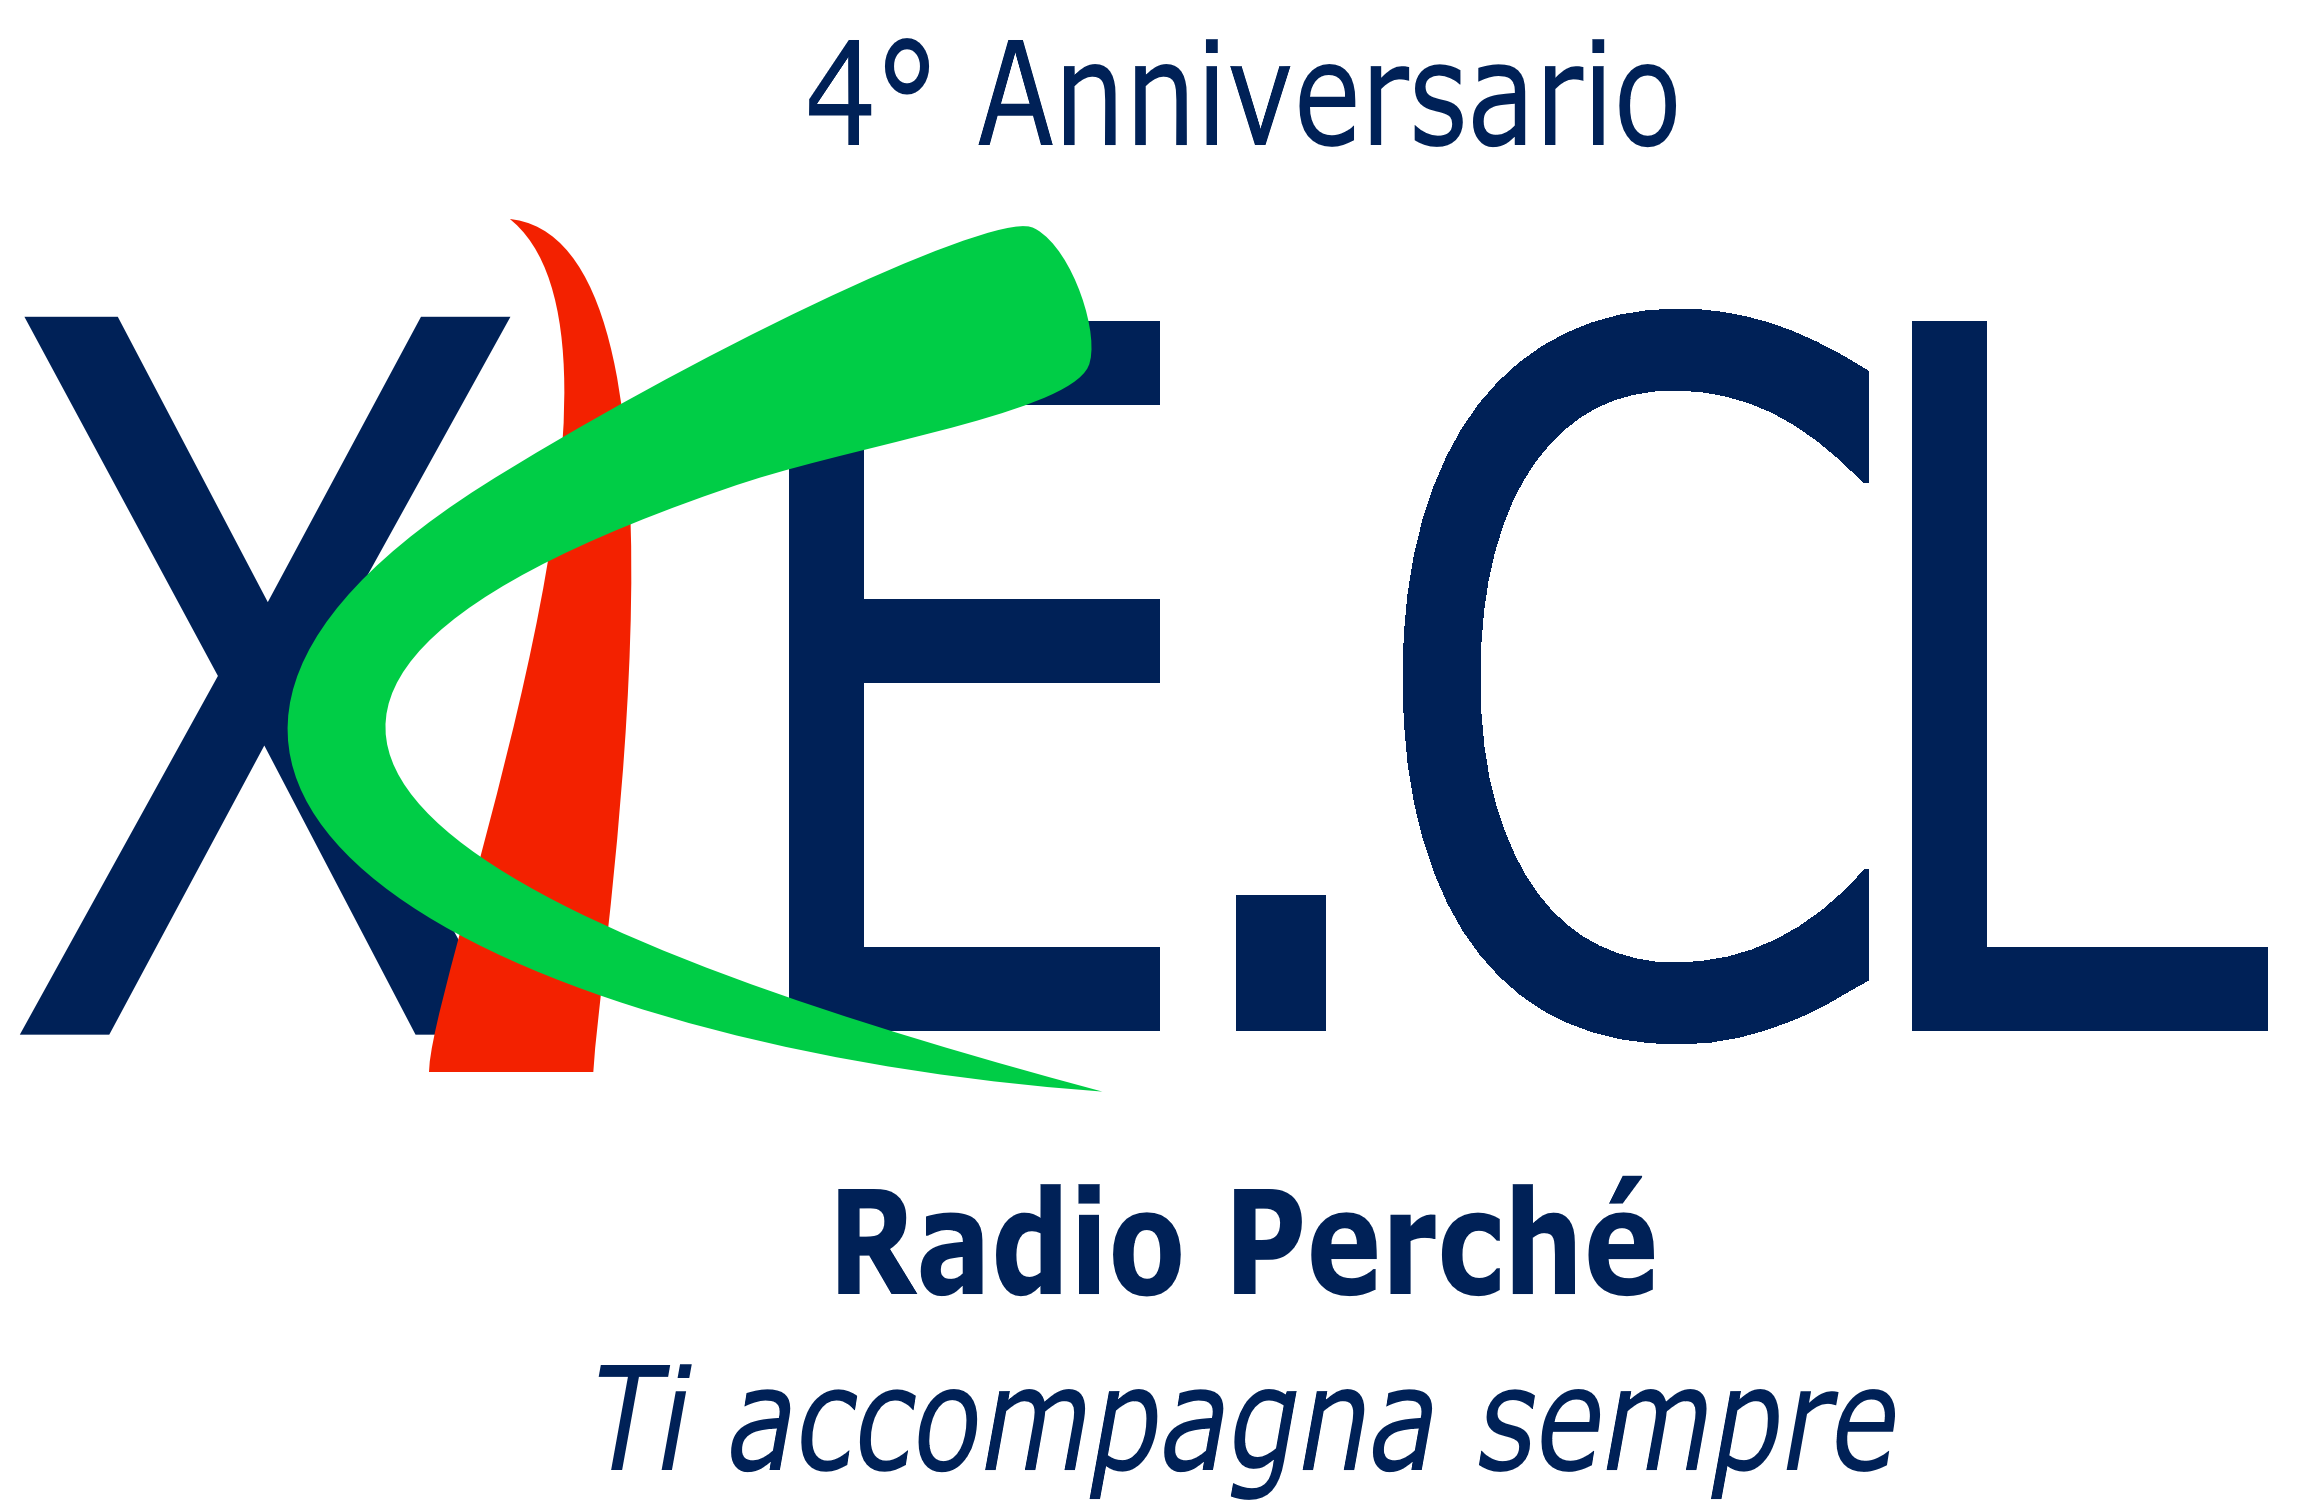 XKE.cl La radio italiana en Chile